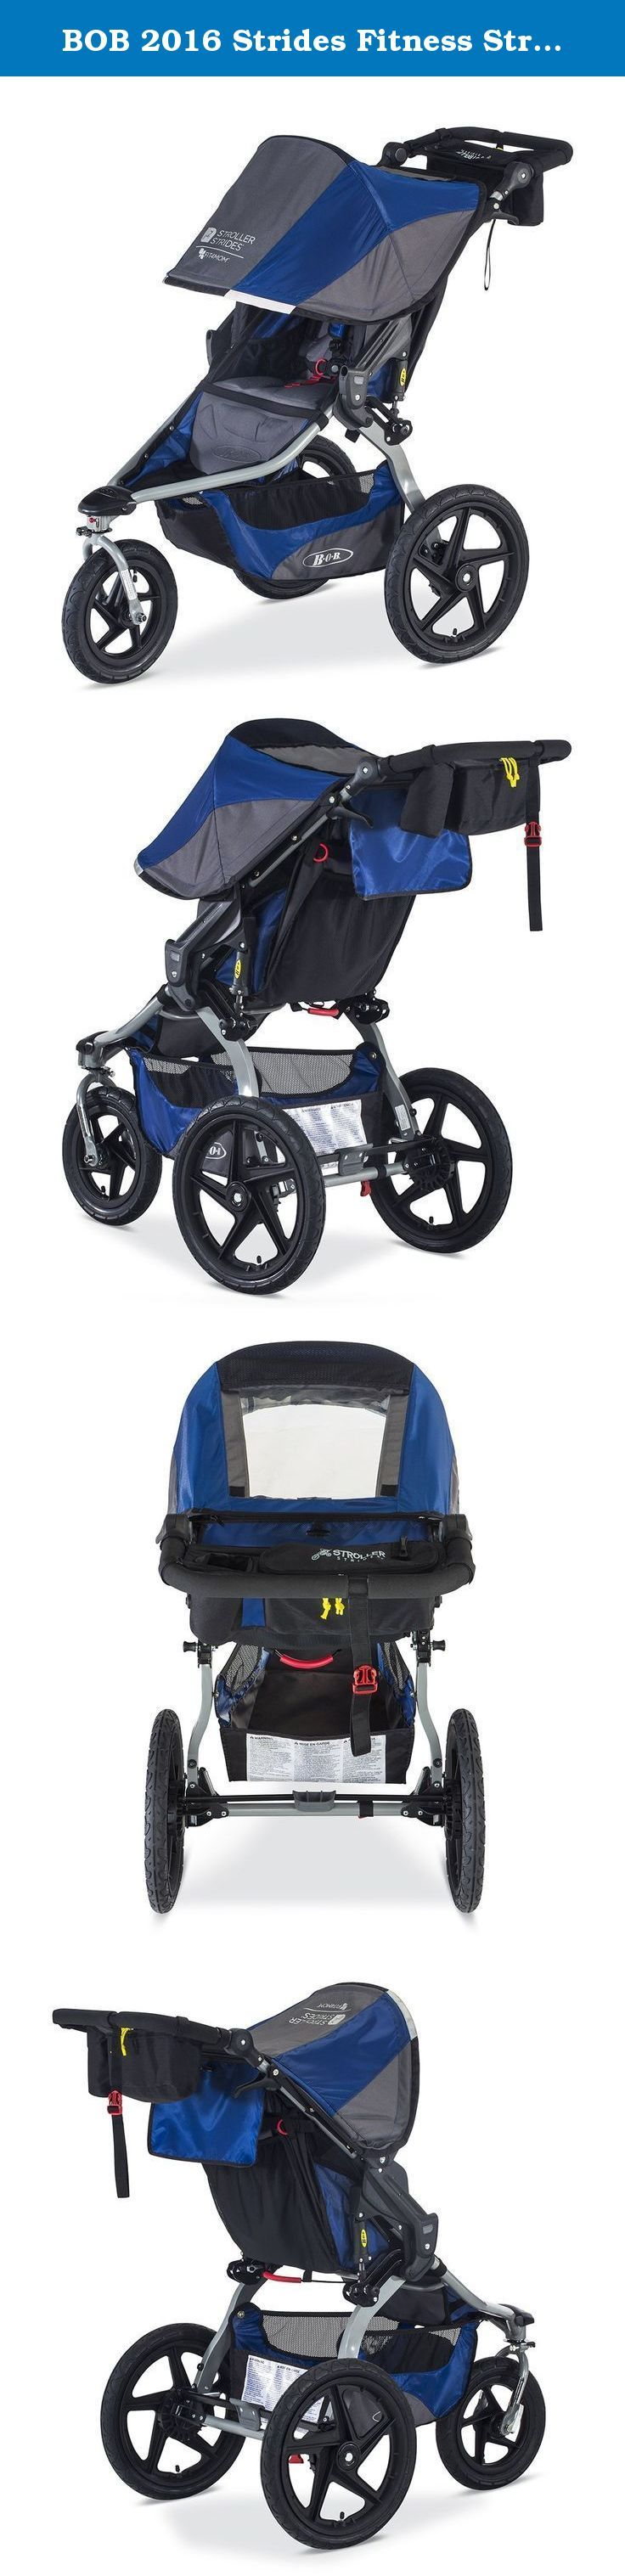 BOB 2016 Strides Fitness Stroller, Blue. The Stroller Strides Fitness Stroller by BOB is the ideal on- and off-road jogging stroller, keeping families active for years to come. It's equipped with a coupon for Stroller Strides fitness classes by Fit4Mom and a Stroller Strides Fitness Kit by BOB, including a Handlebar Console, Stroller Strides exercise manual and SPRI fitness resistance bands. The Stroller Strides Fitness Stroller is amazingly versatile. The front wheel swivels, which…